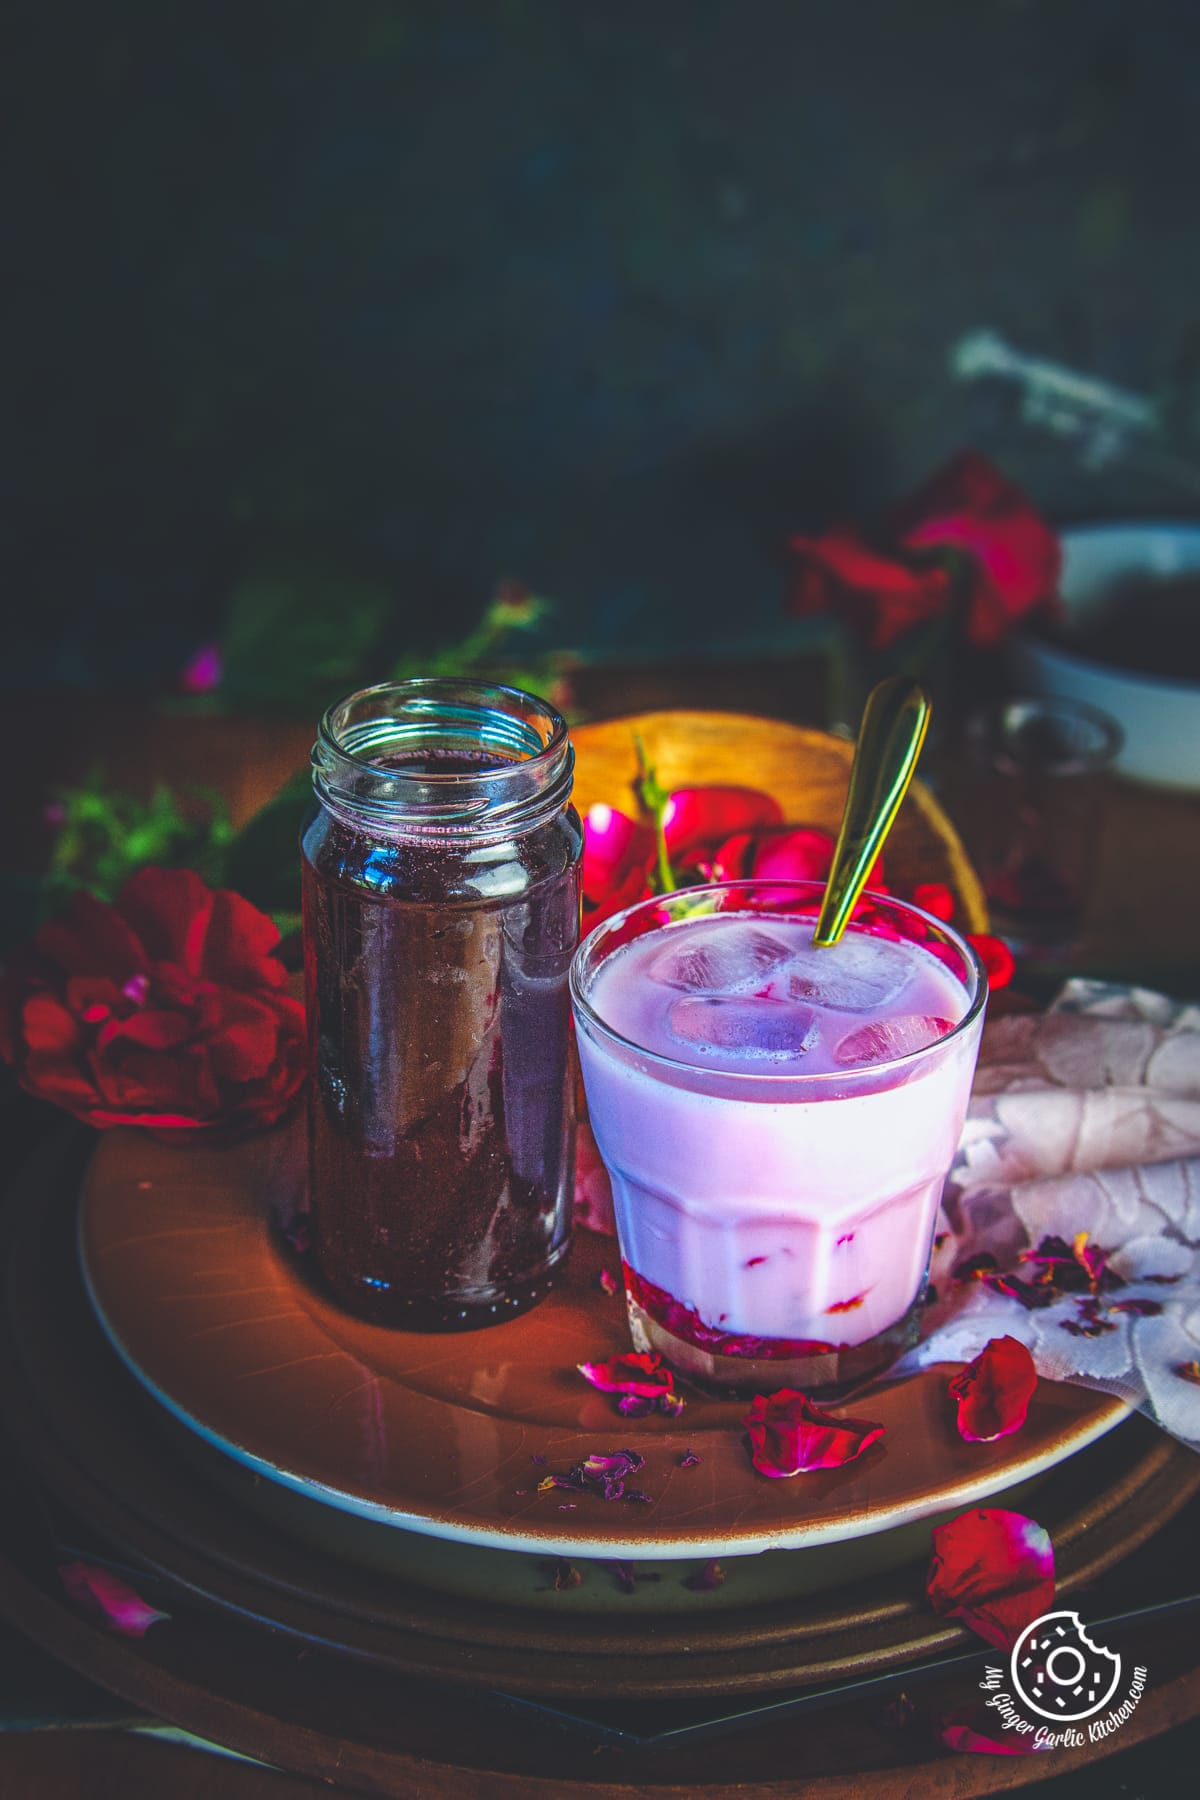 rose syrup in a glass bottle and rose milk in a glass